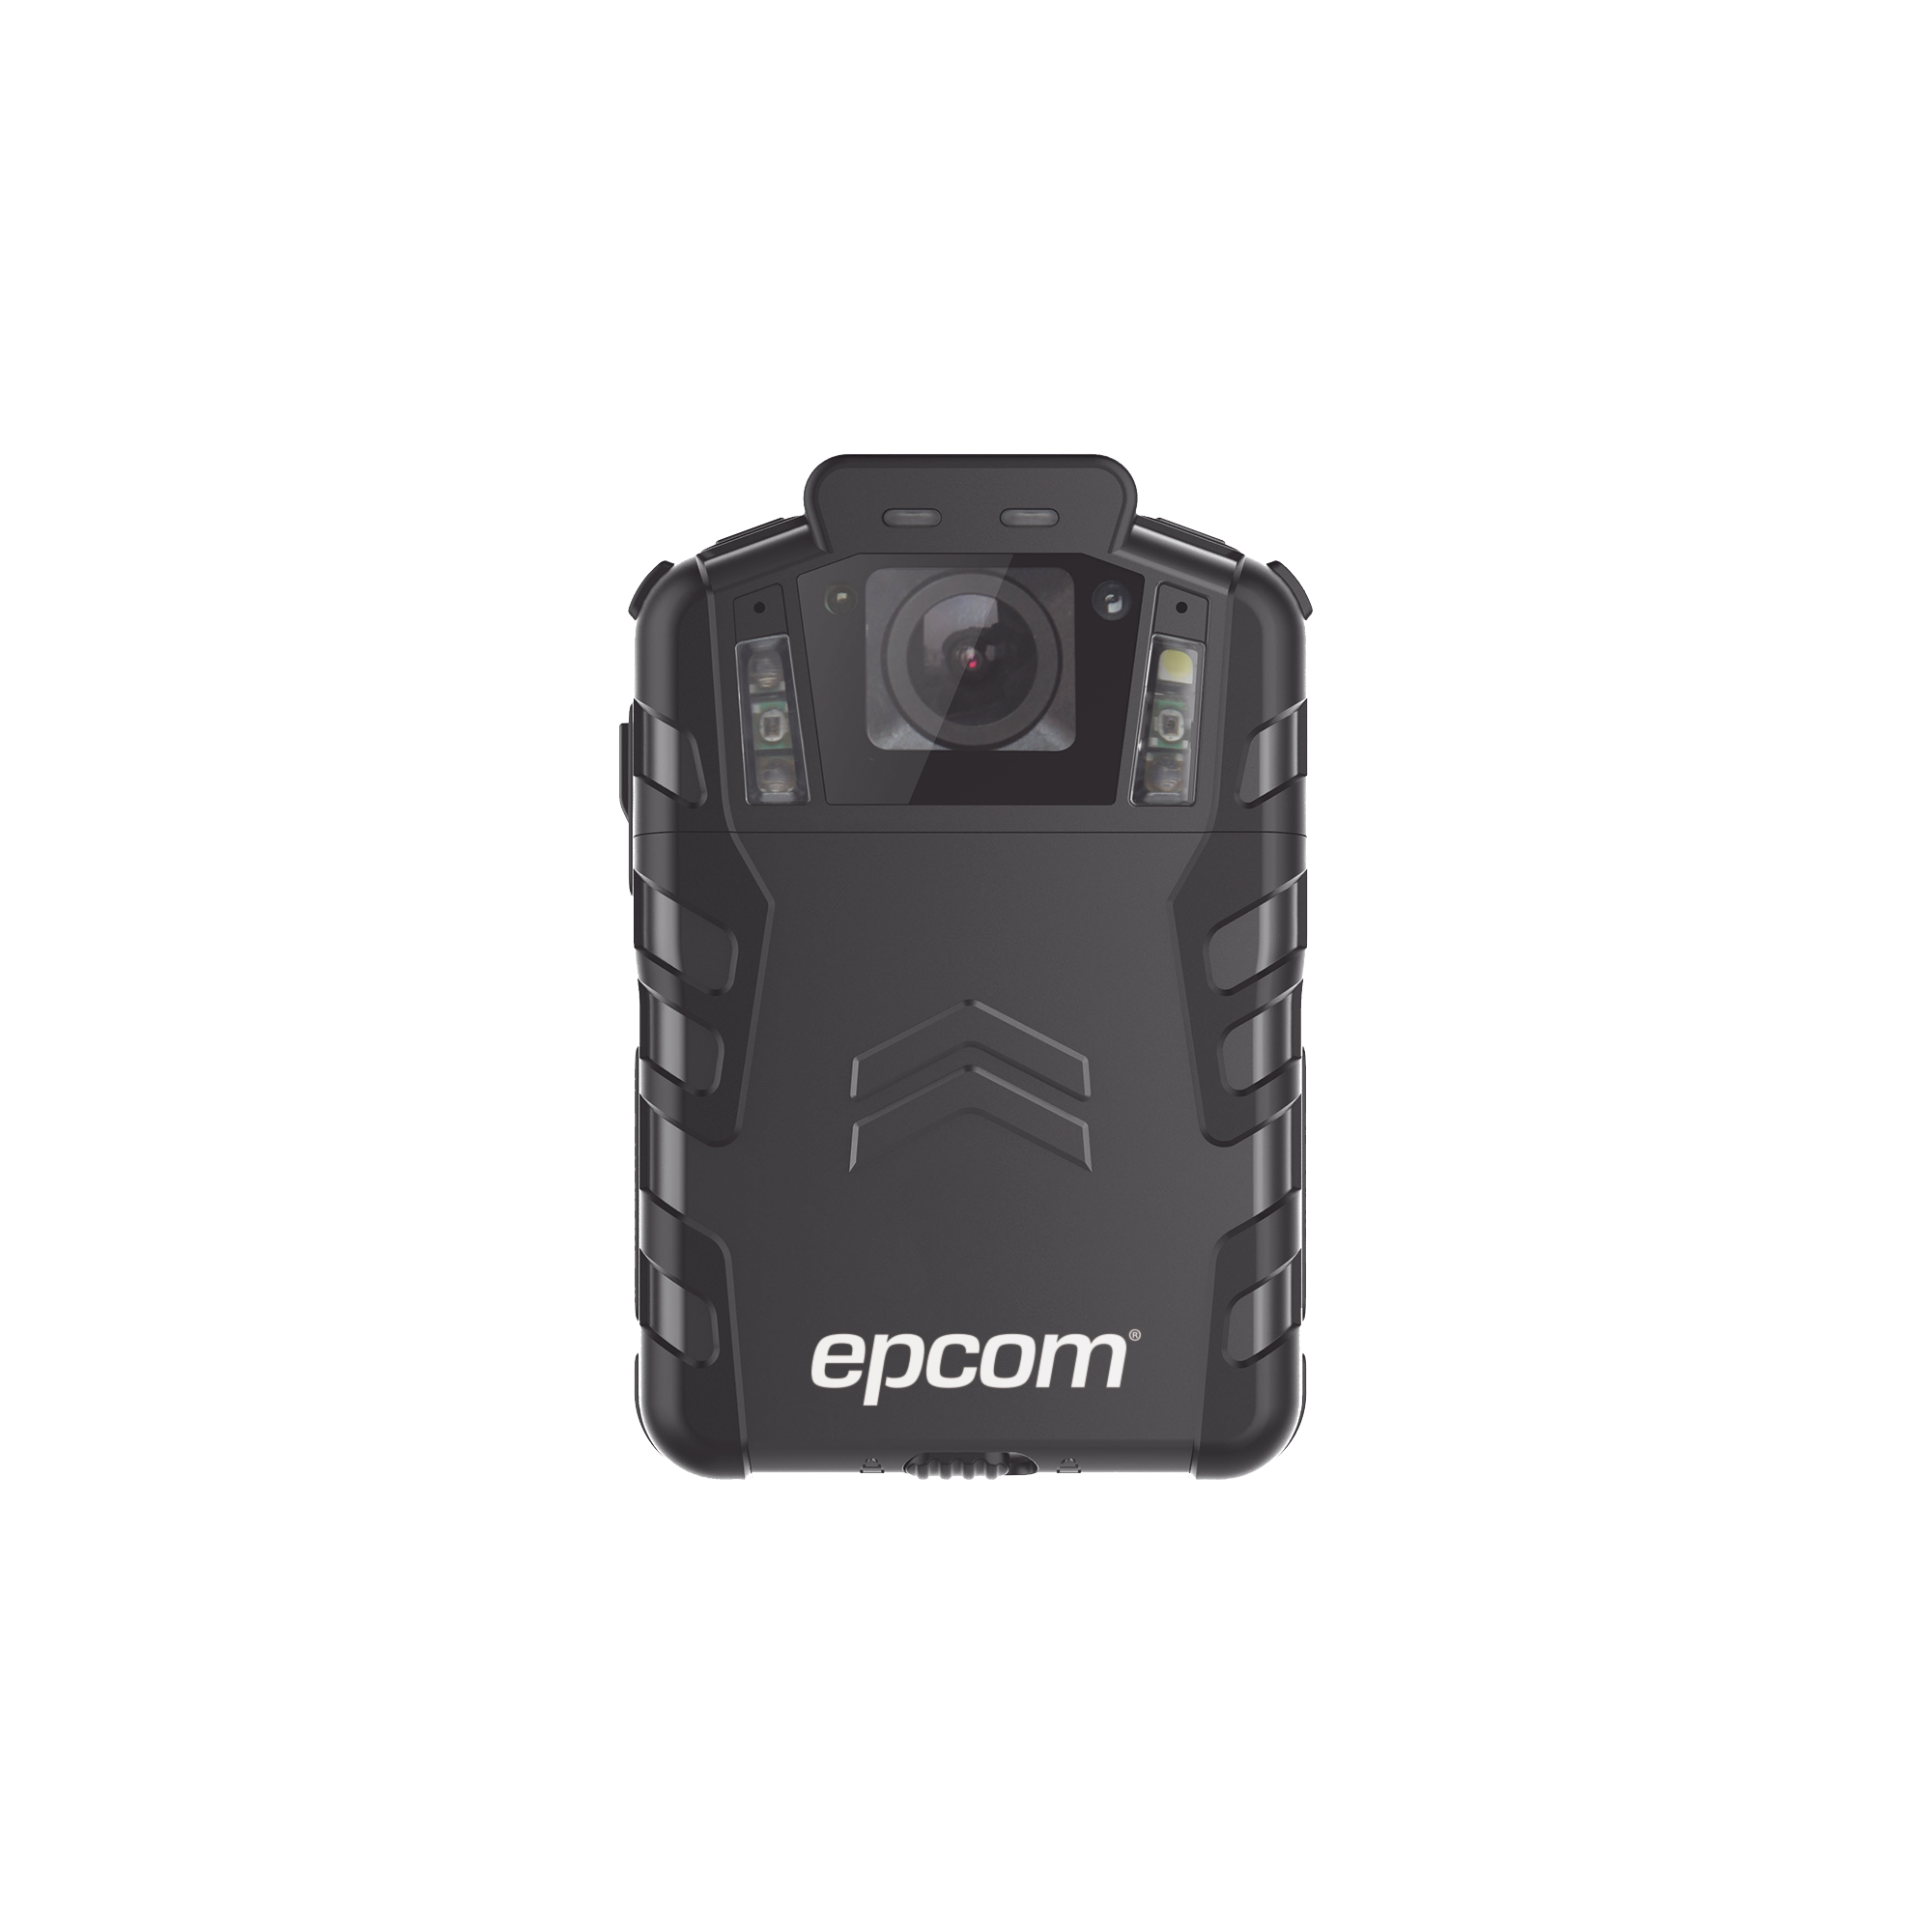 Body Camera para Seguridad, Hasta 32 Megapixeles, Video HD 3 Megapixel, Descarga de Video automática, GPS Interconstruido, Pantalla LCD